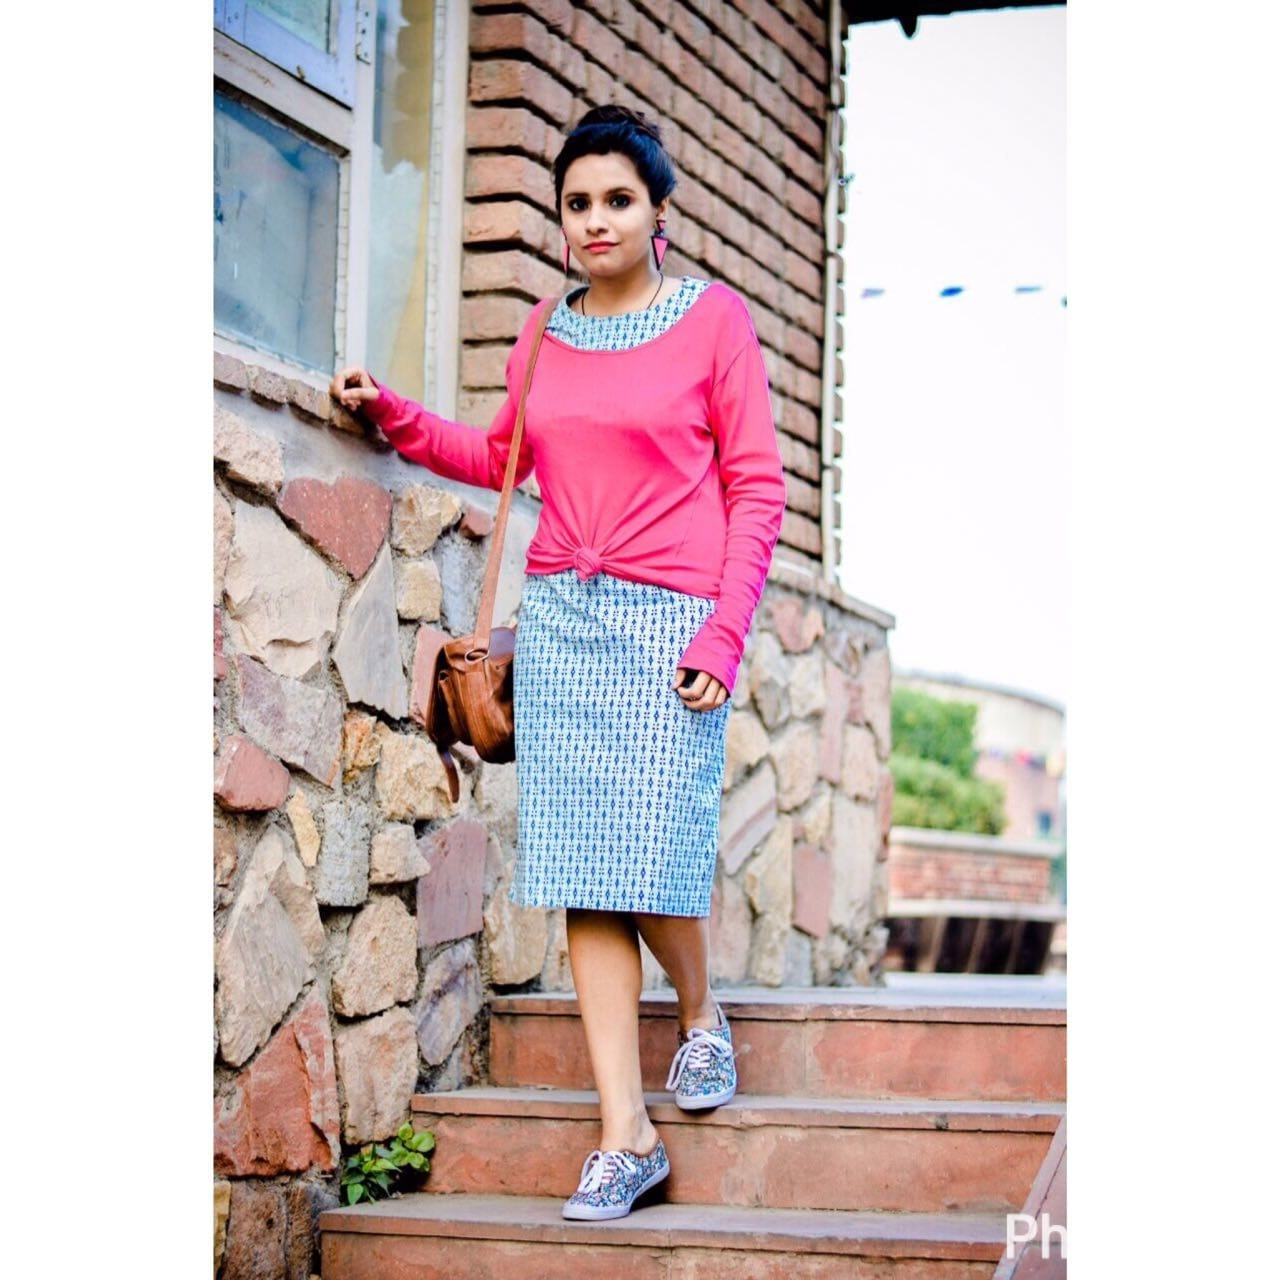 Shoes: @paylessshoesourceindia, super comfortable & slaying in floral prints!  Dress: @vajor, loving the print and how well it goes with whole look Earrings: @sugarbox_india, absolutely fav  Top: @maxfashionindia, such vibrant vibes  Bag: Sarojini nagar, great deals always. . . . 📷- @effervescence_photoshoots . . #thestylecheck  #styleblogger #fashionblog #styling  #rfr  #fashiongram #stylist #nature #whatiwore  #fashionista  #indianblogger #fashionista #streetstyle #ootd #ootdshar #crazemag  #personalstyle #indianfashion #sdmdaily